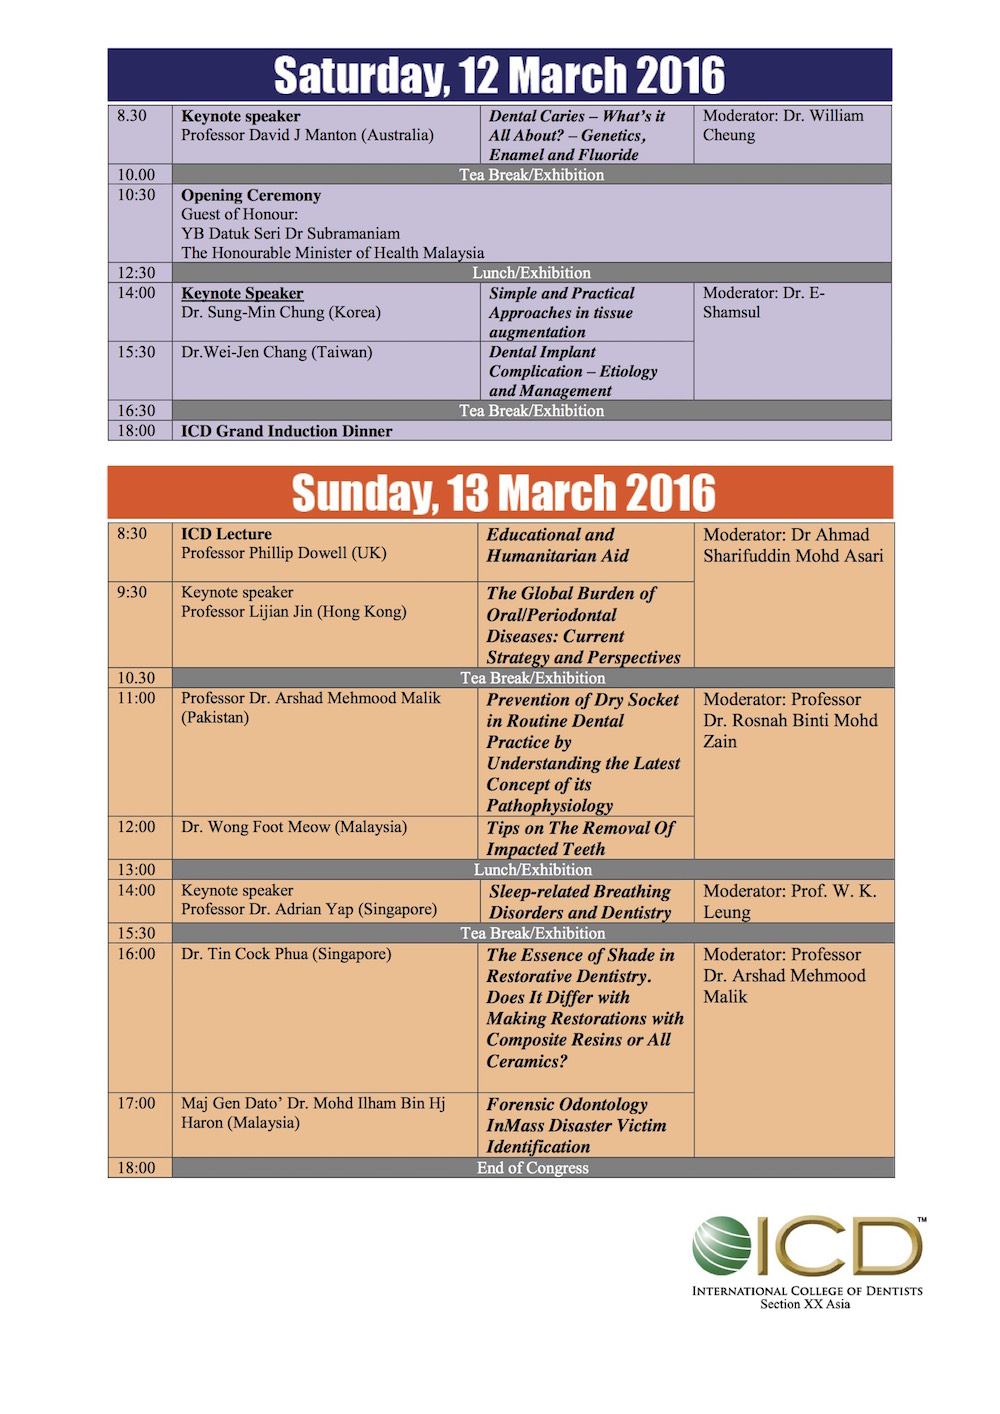 17-2-16-ICD-Congress-Scientific-programme-2